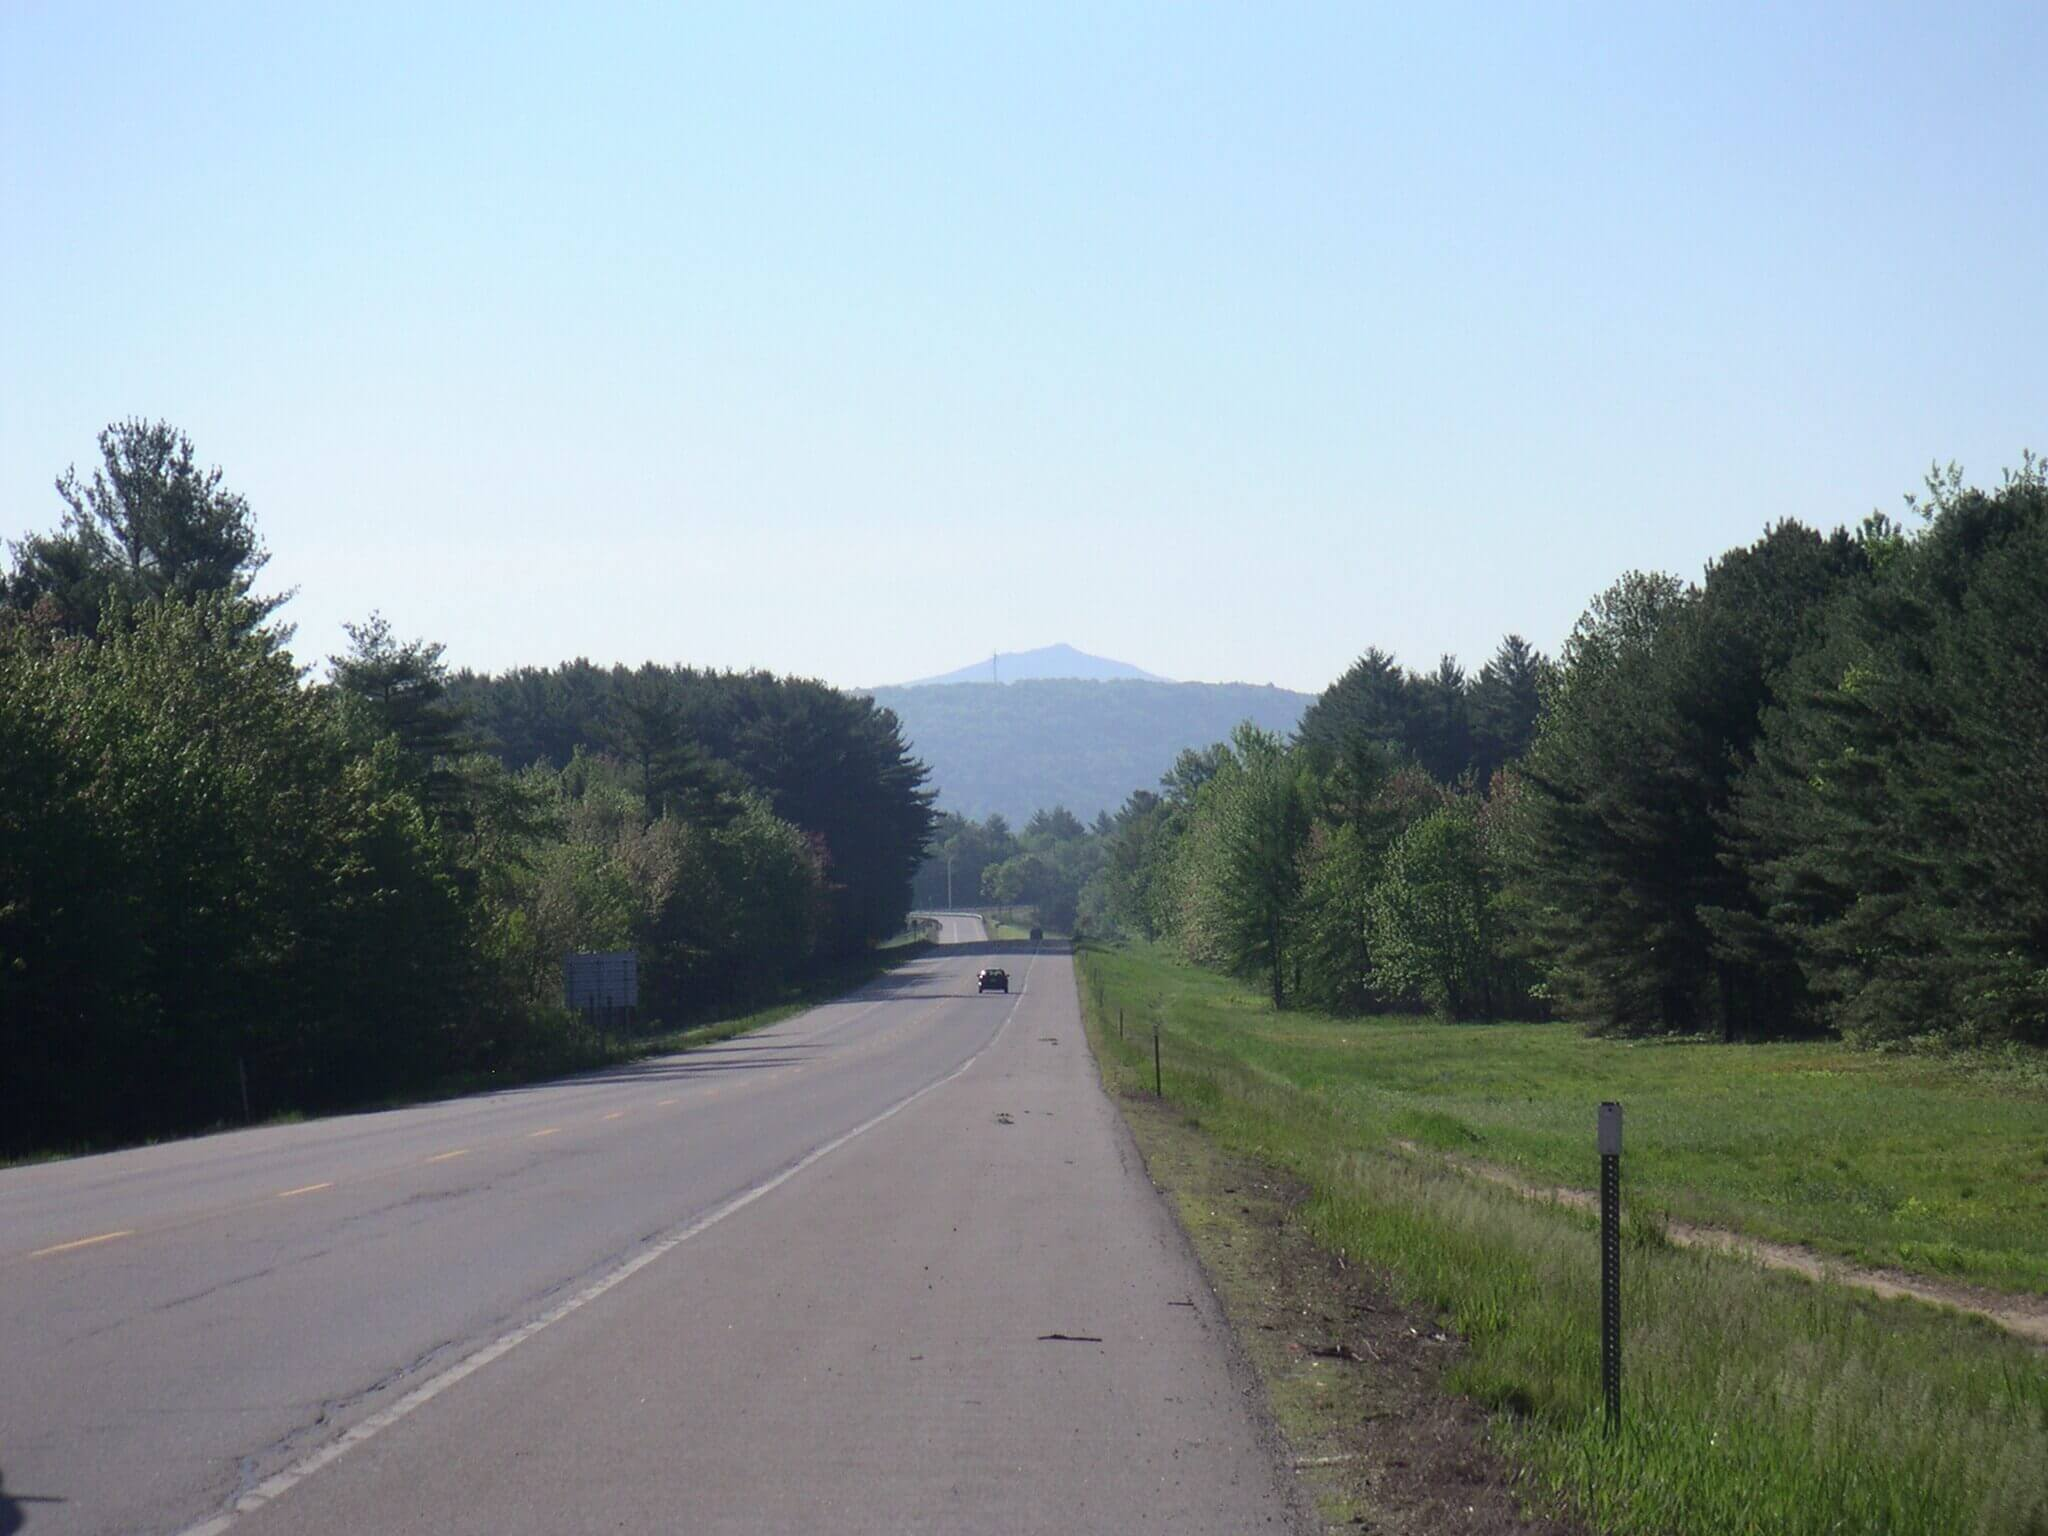 Mt Monadnock in the distance